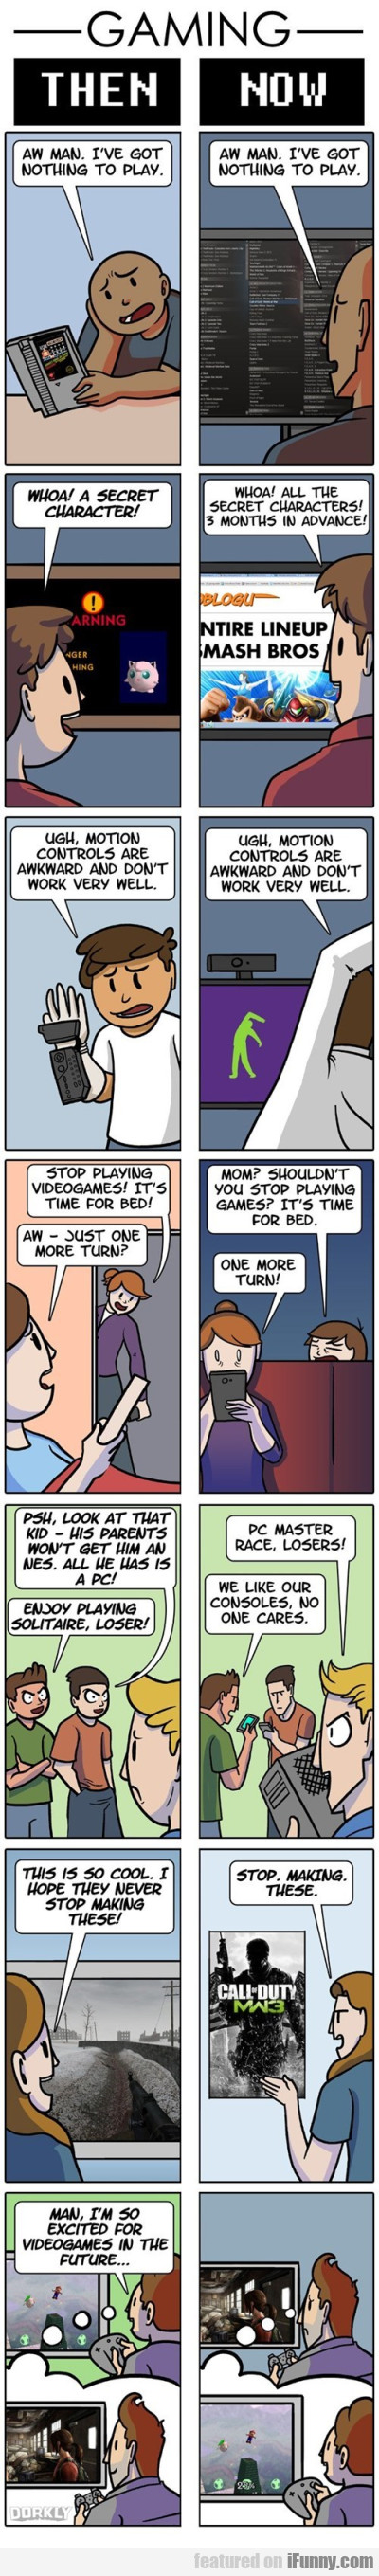 Gaming - Then Versus Now